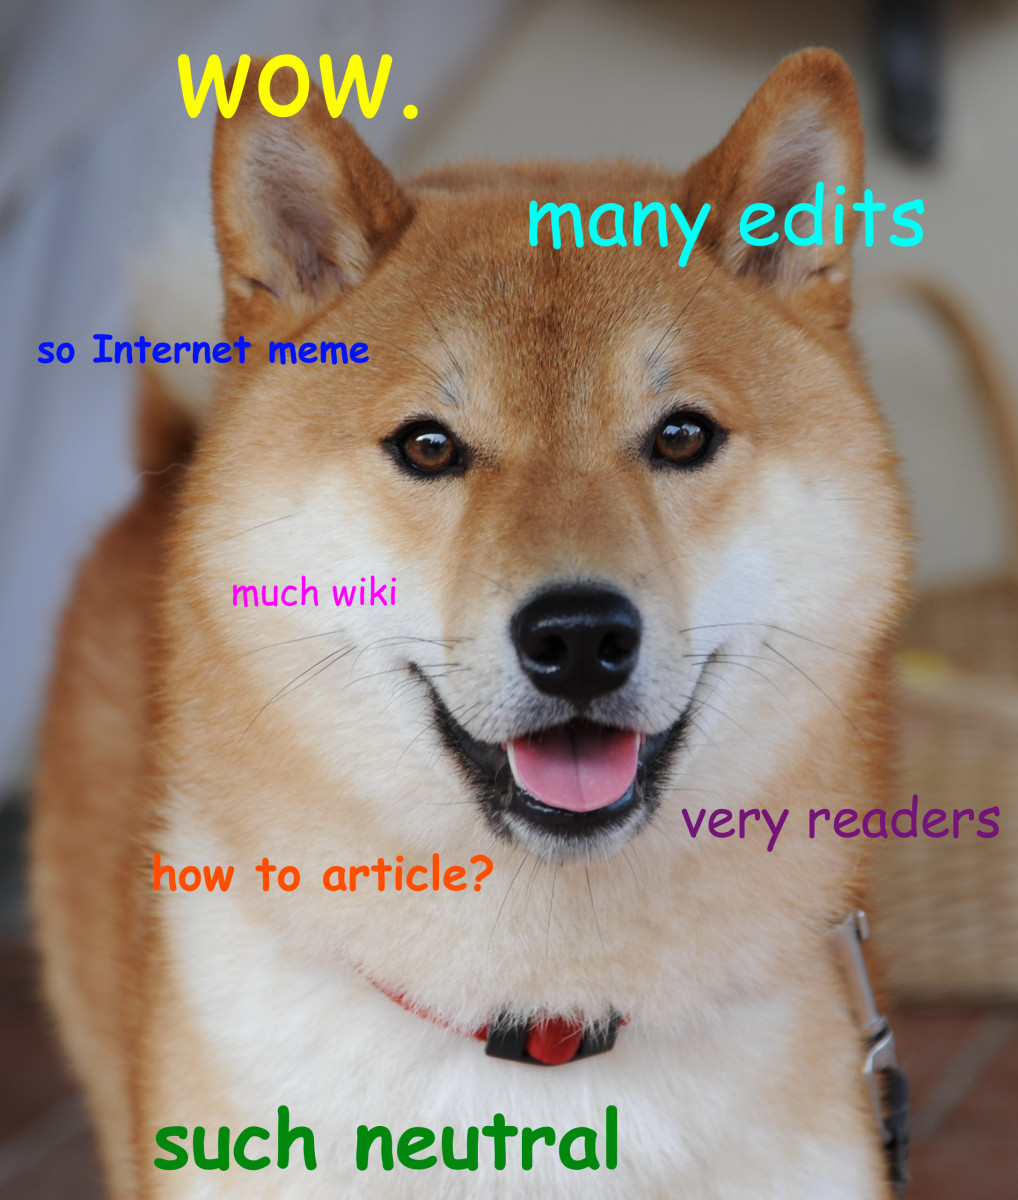 Doge is a very popular meme.  It even spawned a digital currency by the name of Dogecoin.